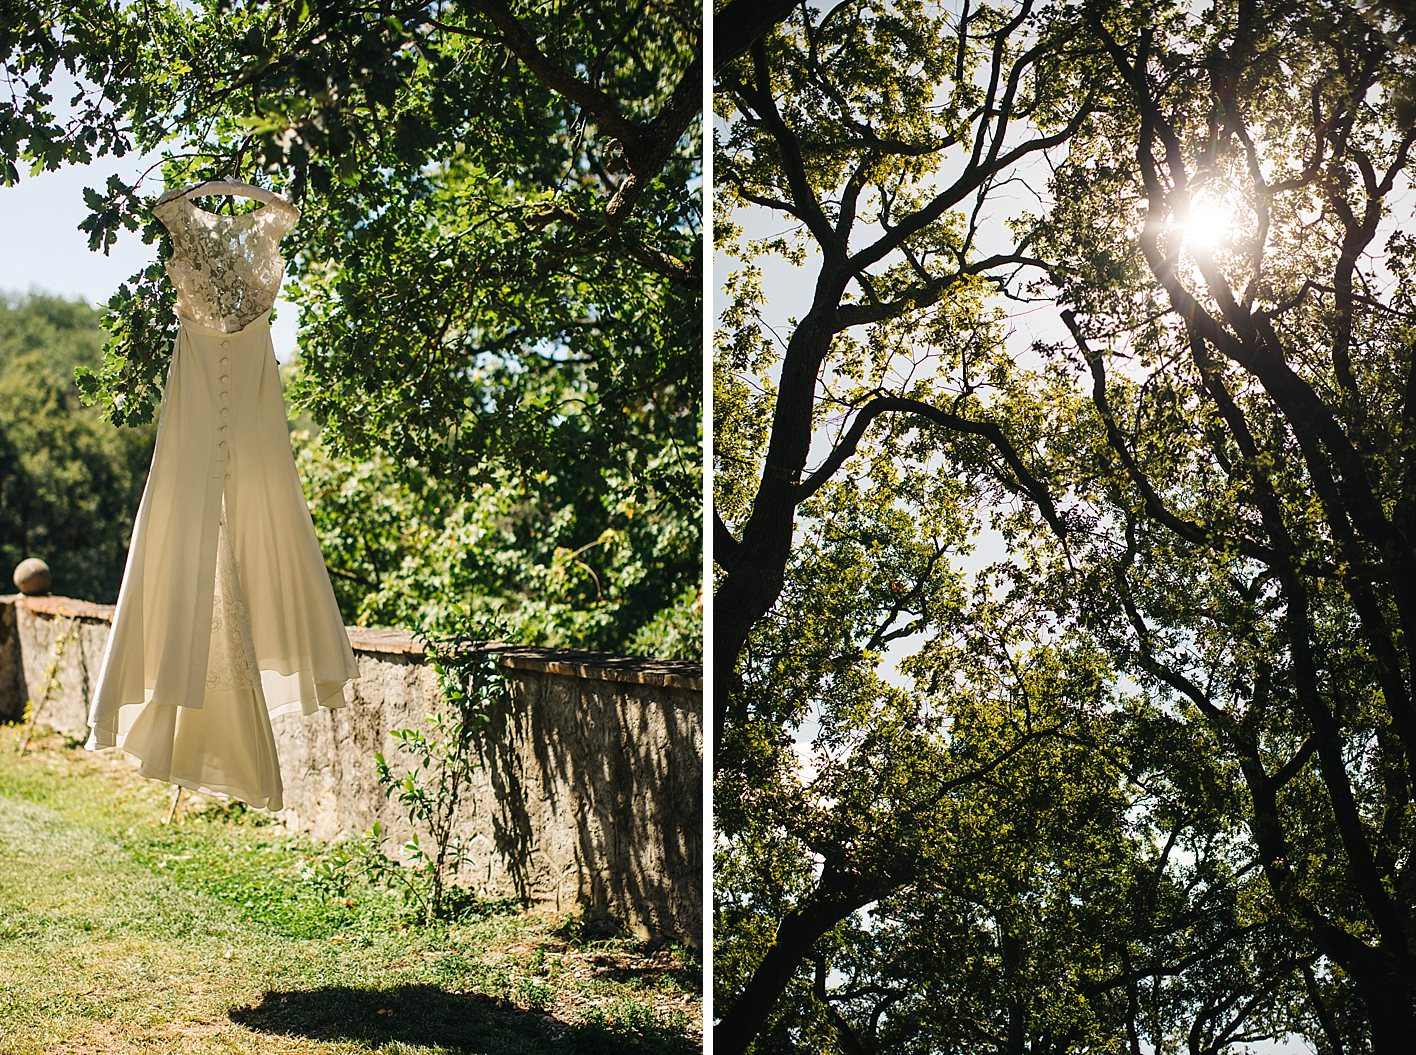 rime arodaky wedding dress hanging from tree